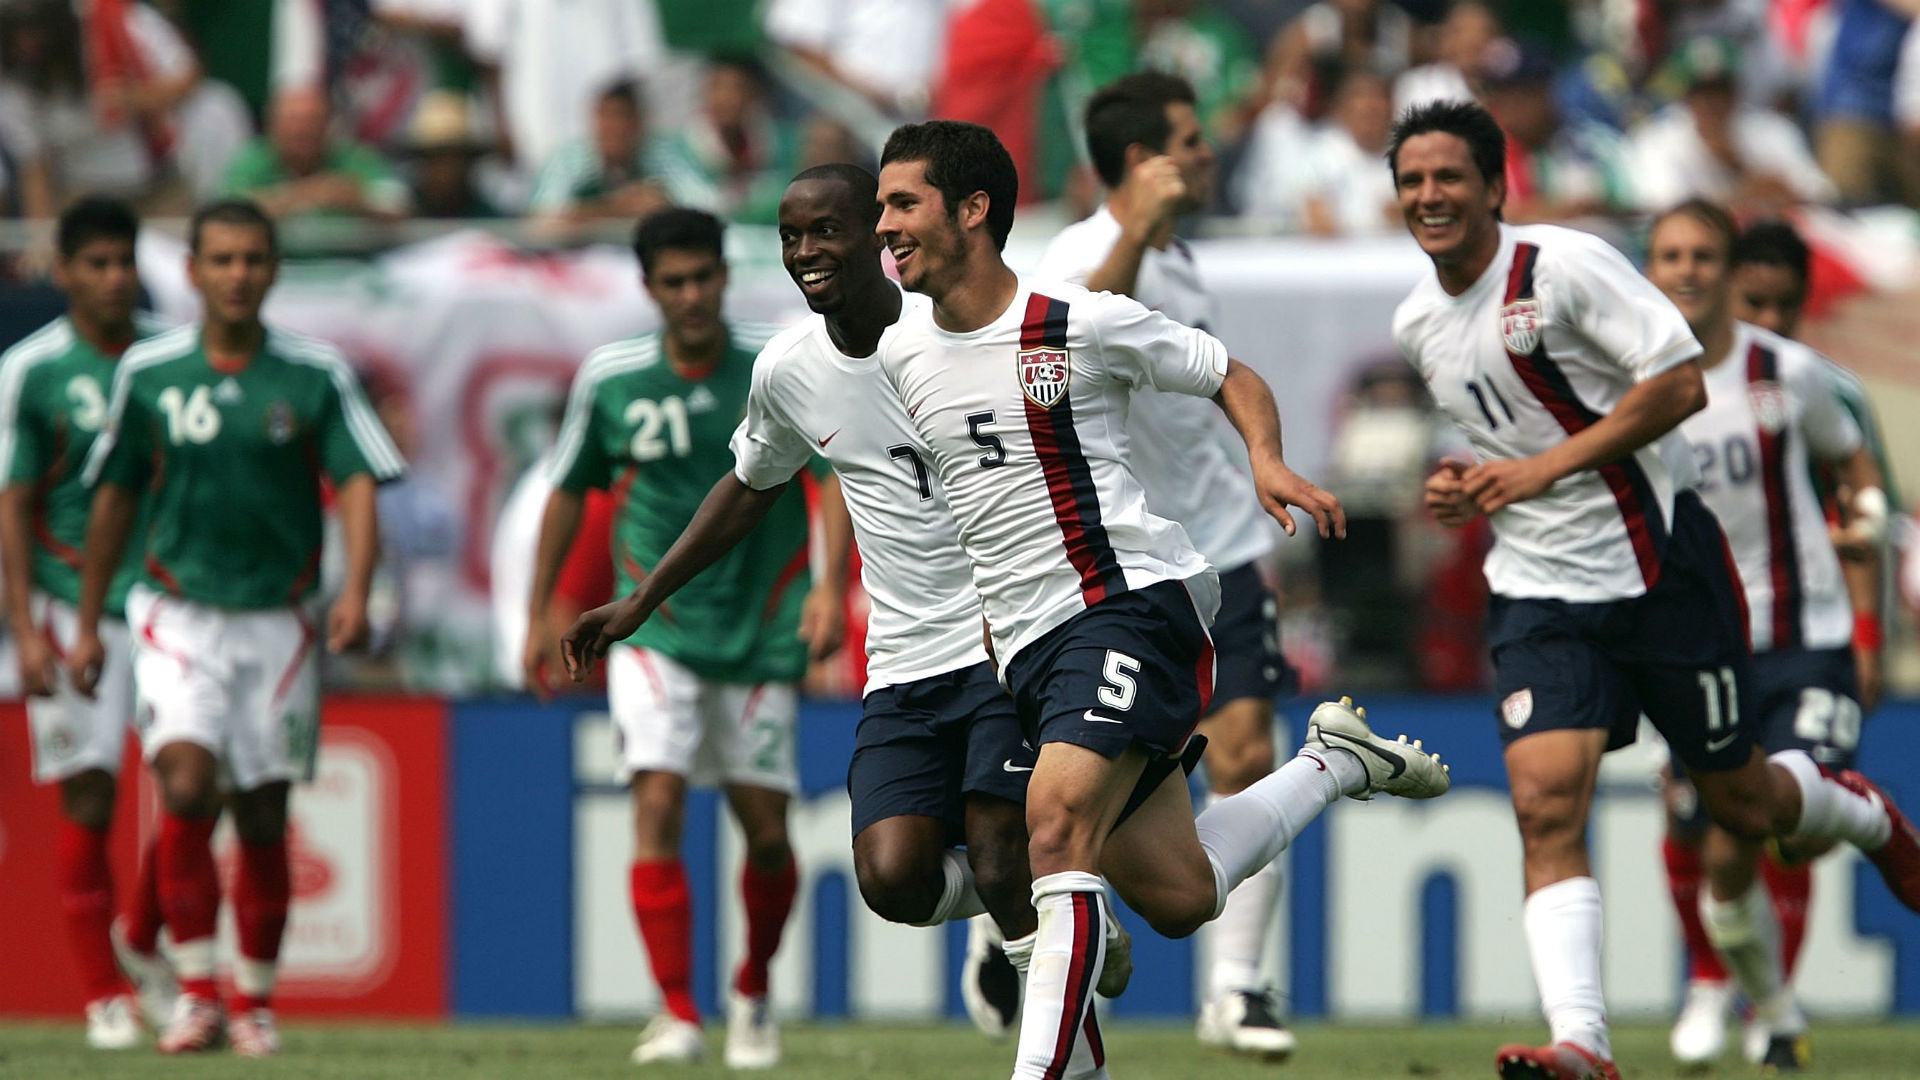 Benny Feilhaber USA Mexico 2007 Gold Cup Final